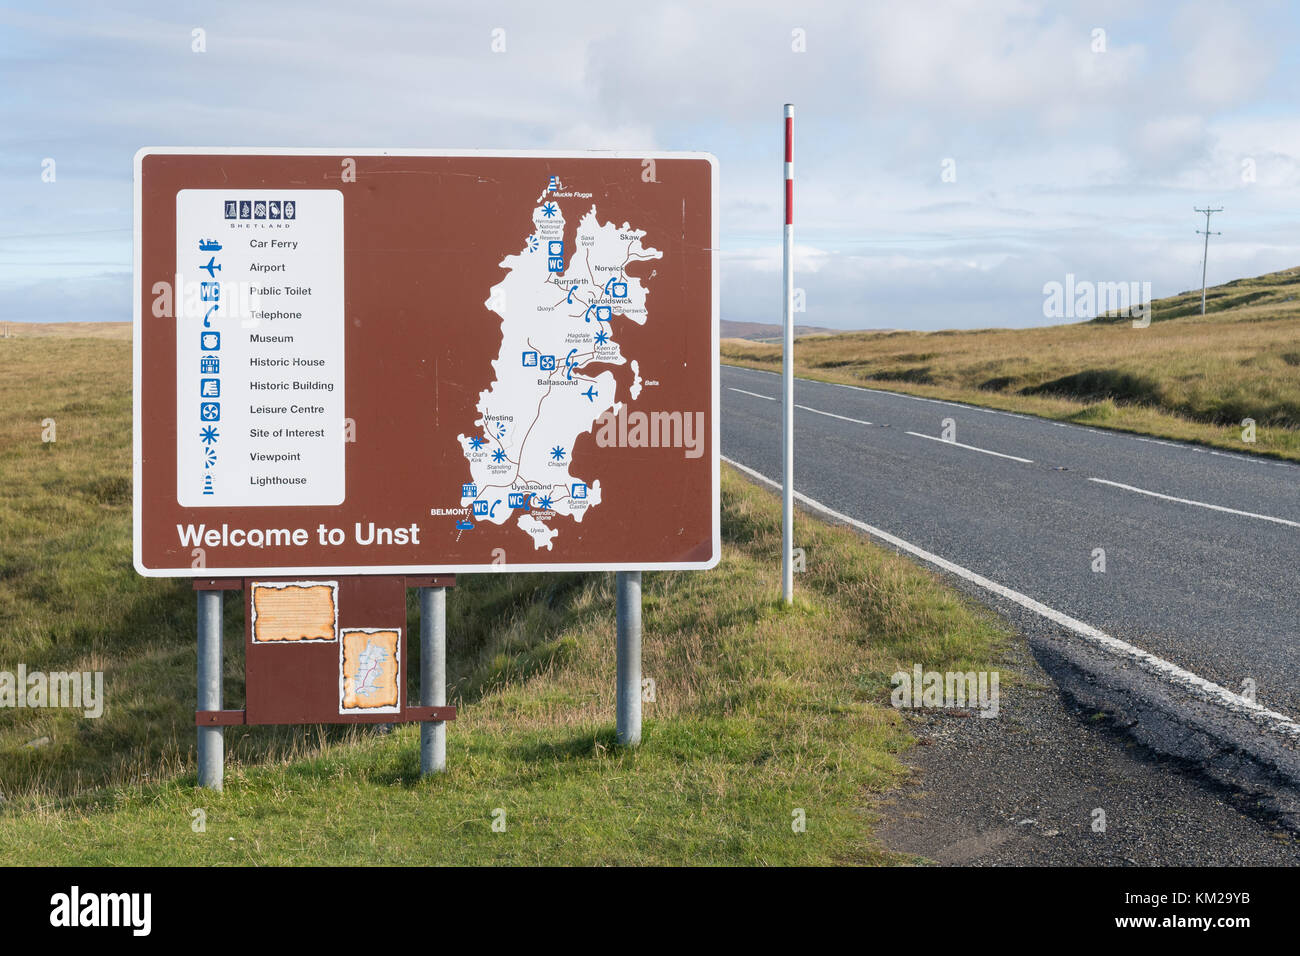 Welcome to Unst sign and map, Unst, Shetland Islands, Scotland, UK - Stock Image